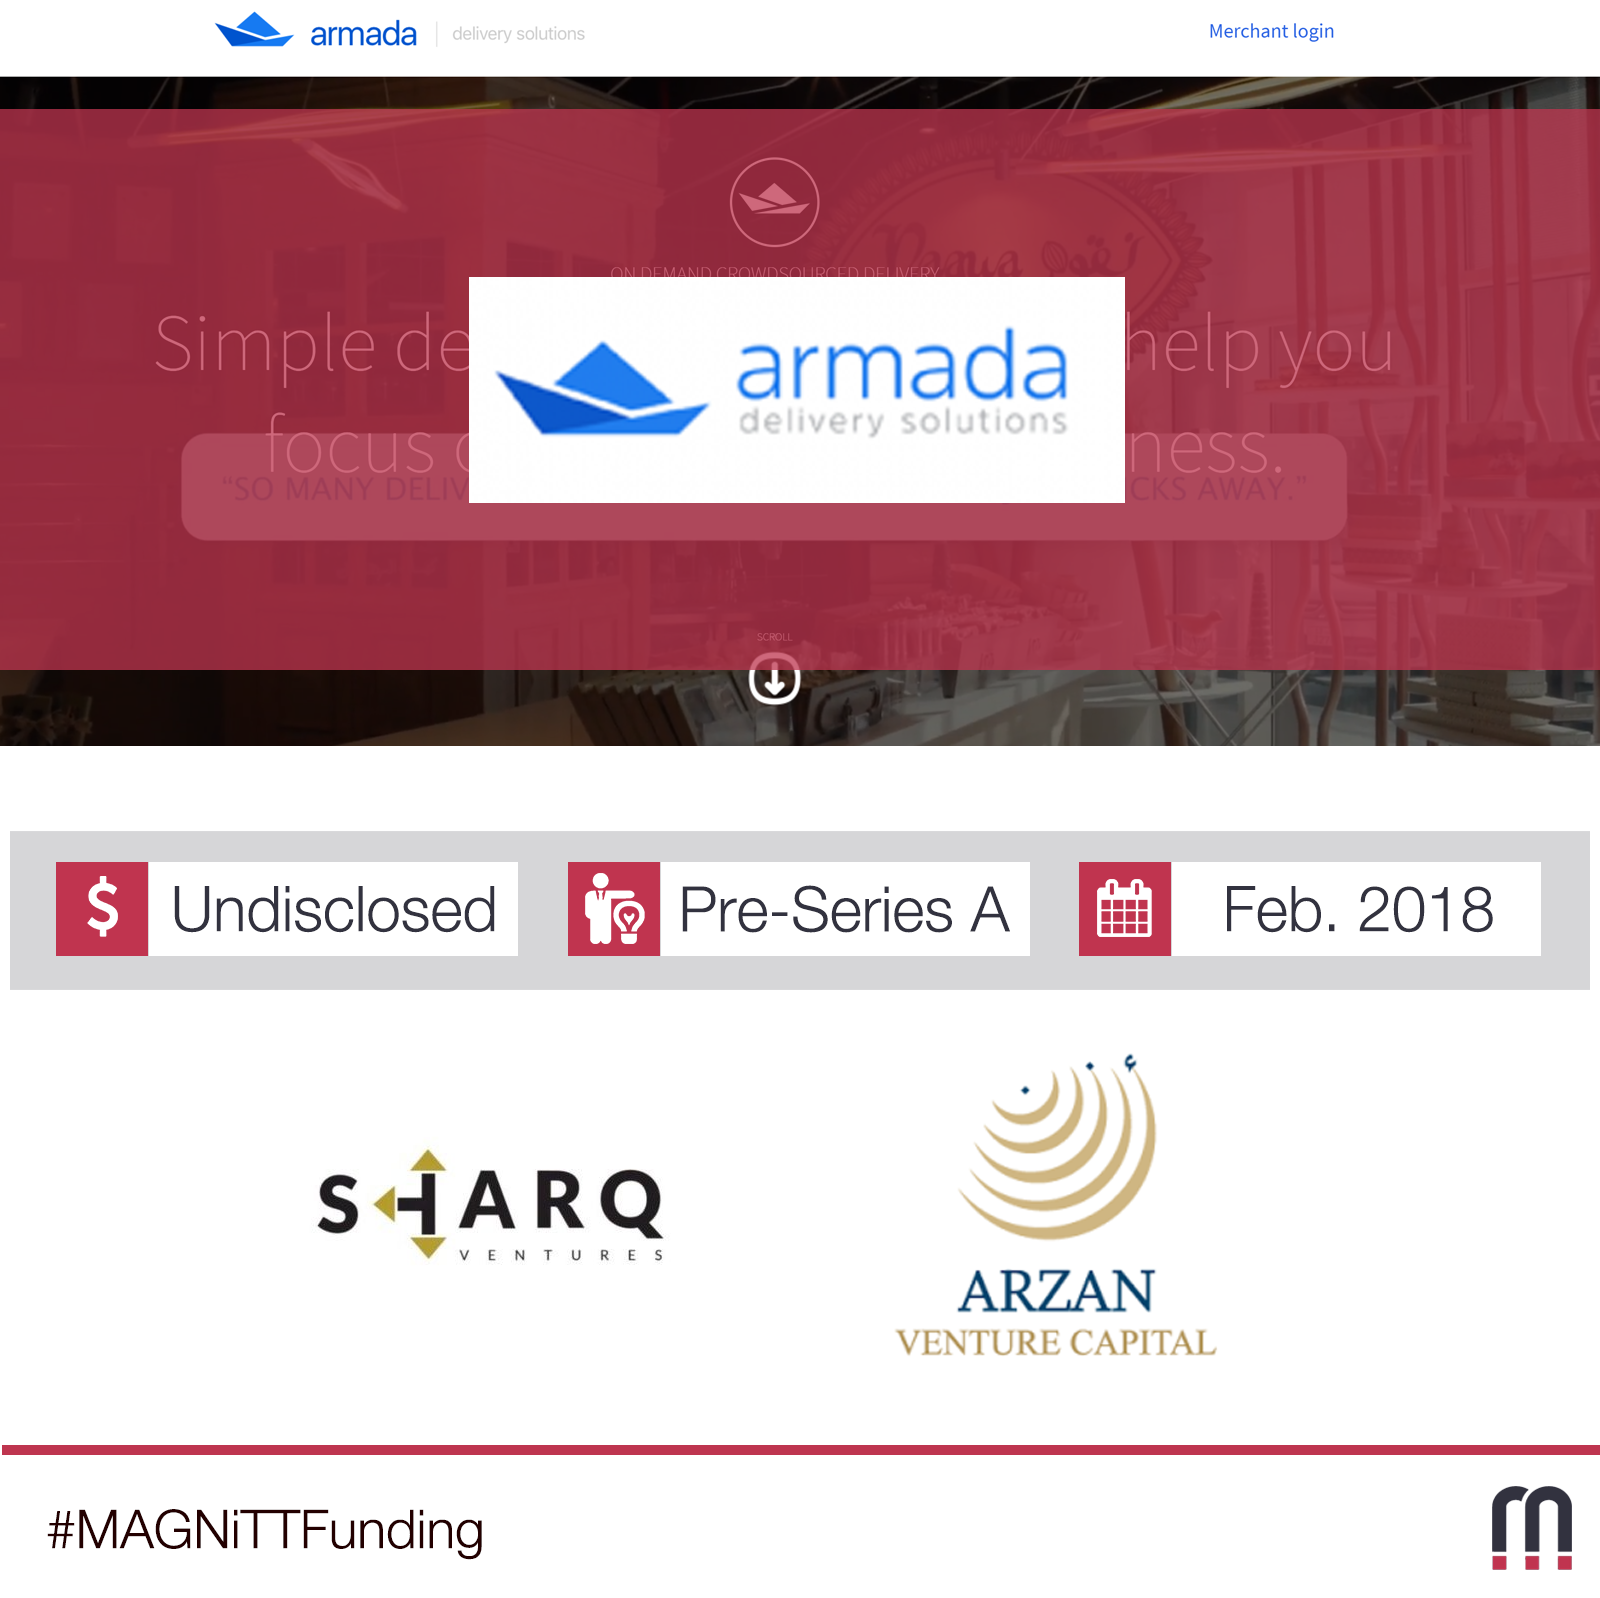 Armada delivery solutions raises a Pre-Series A round with Sharq Ventures